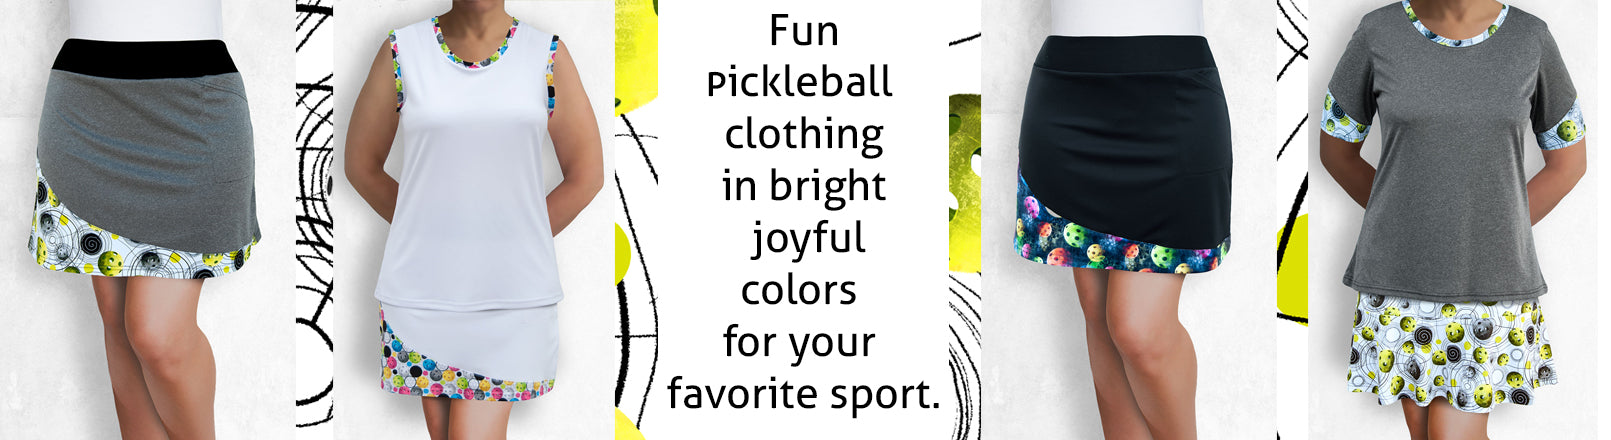 Pickleball Clothing